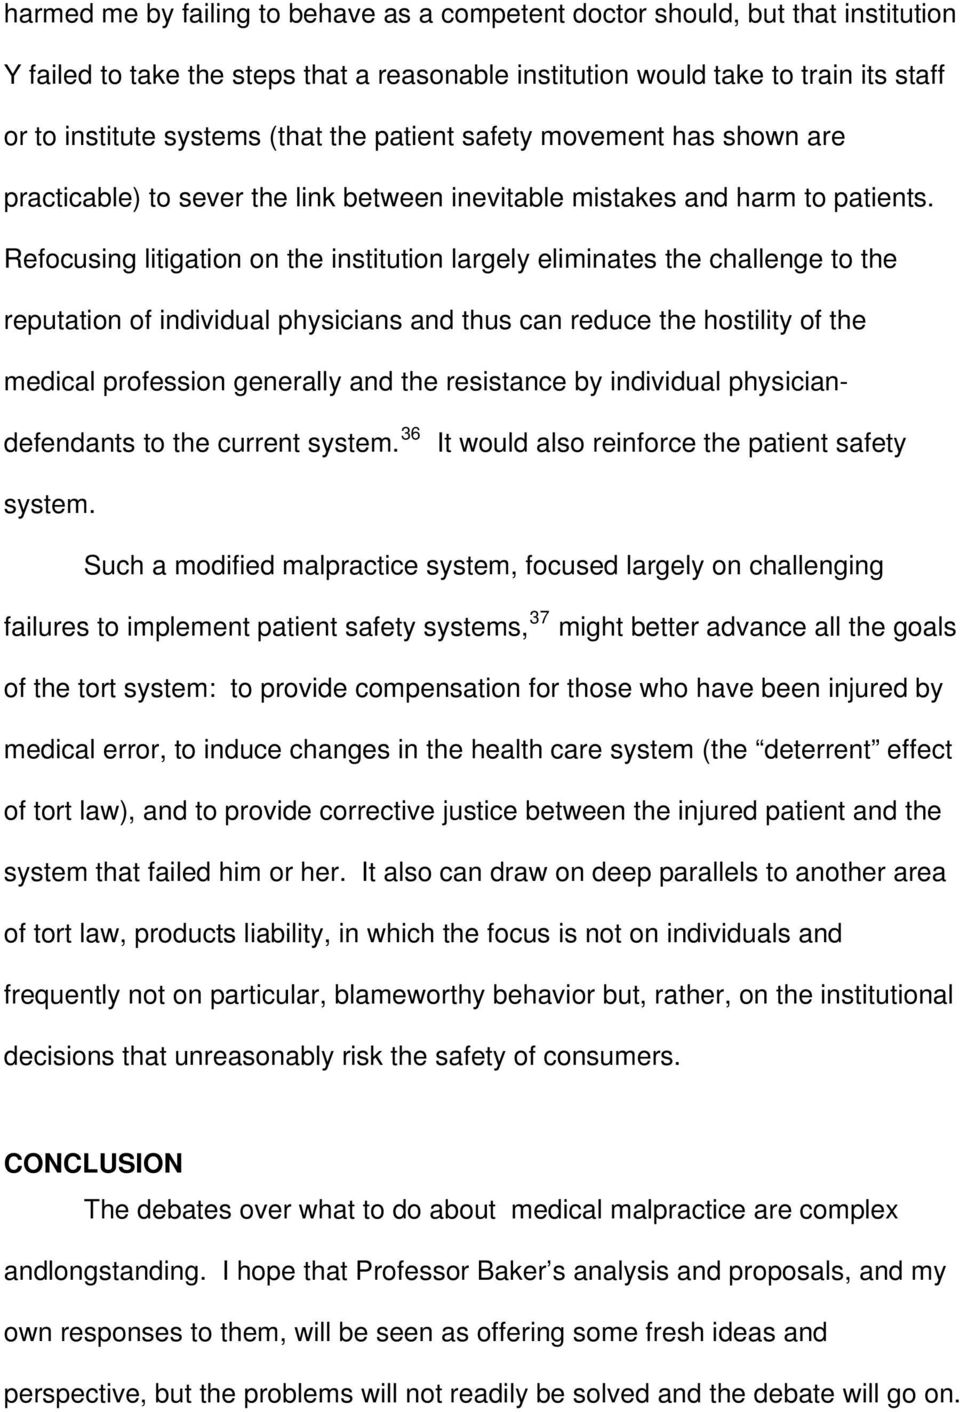 Refocusing litigation on the institution largely eliminates the challenge to the reputation of individual physicians and thus can reduce the hostility of the medical profession generally and the